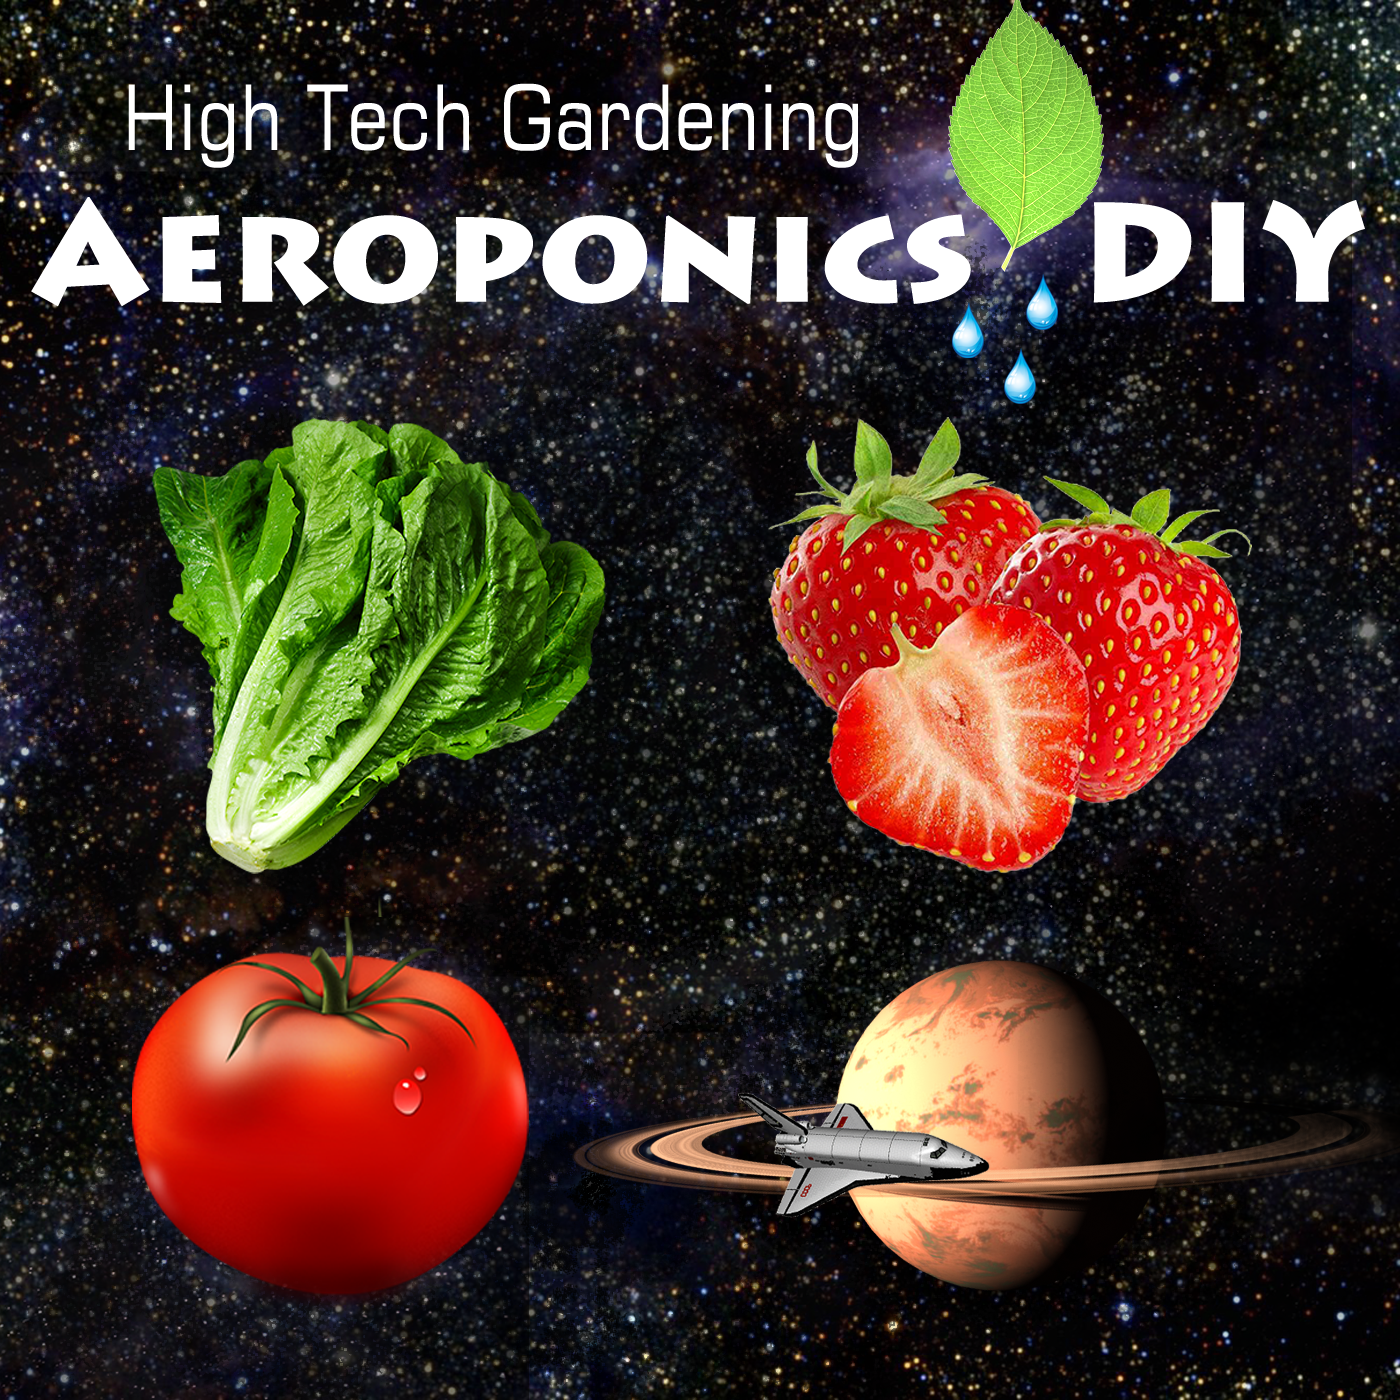 the aeroponics diy podcast indoor gardening high tech